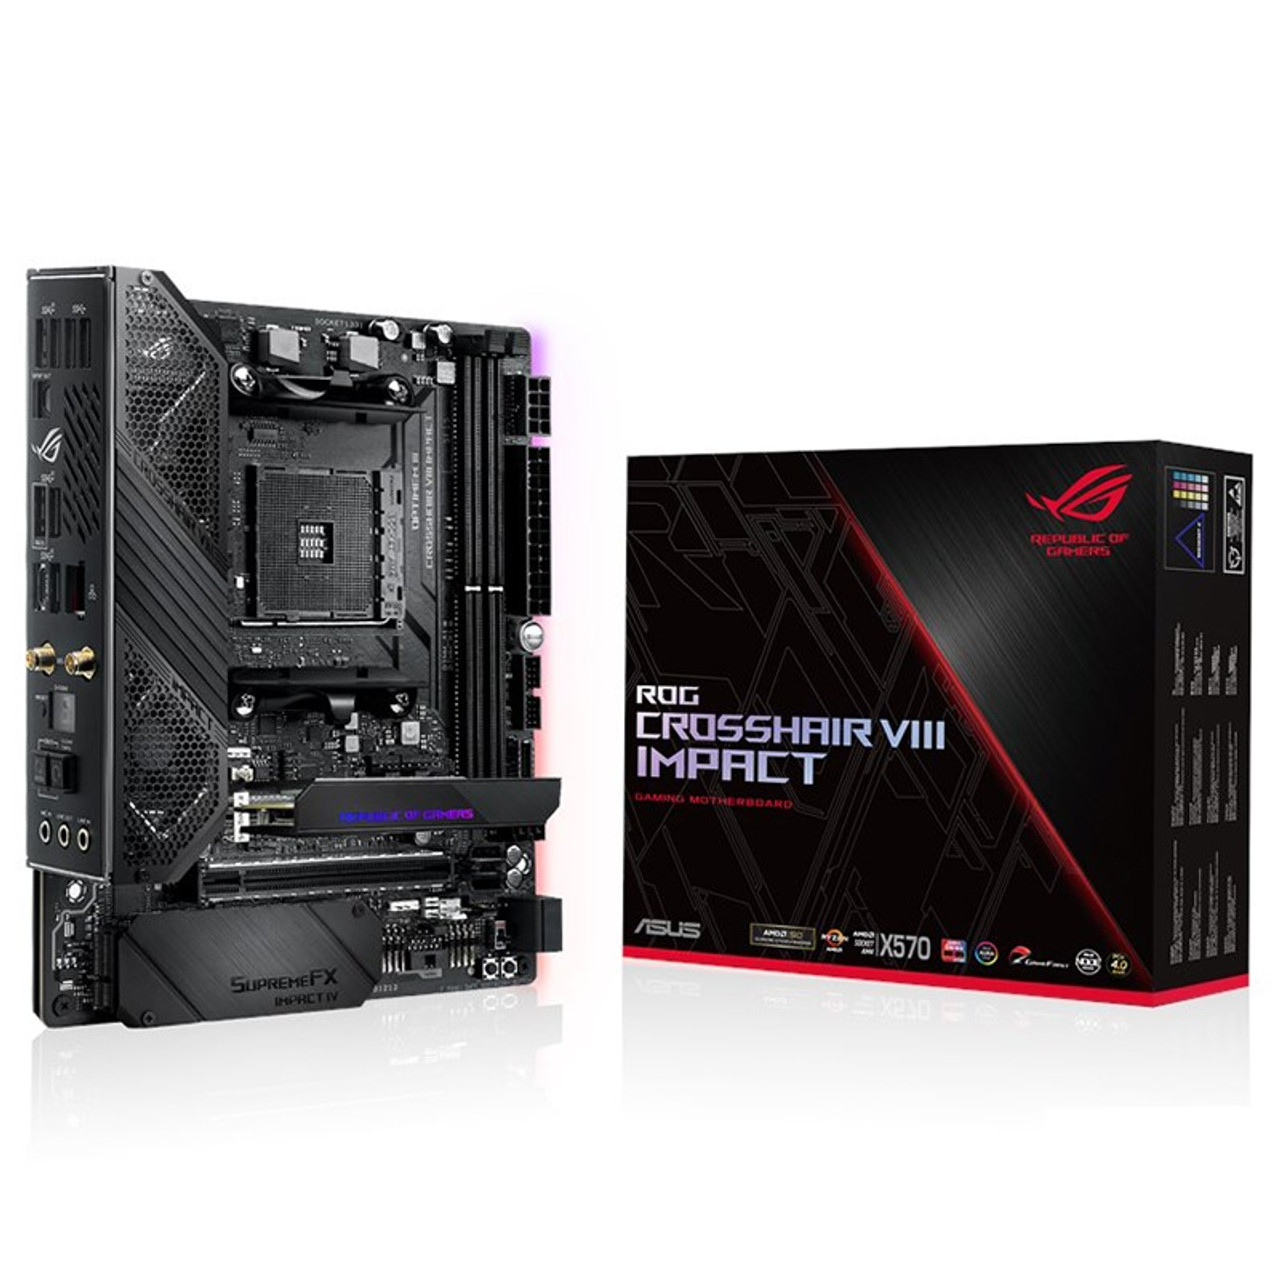 Image for Asus ROG Crosshair VIII Impact X570 Mini-DTX Motherboard CX Computer Superstore